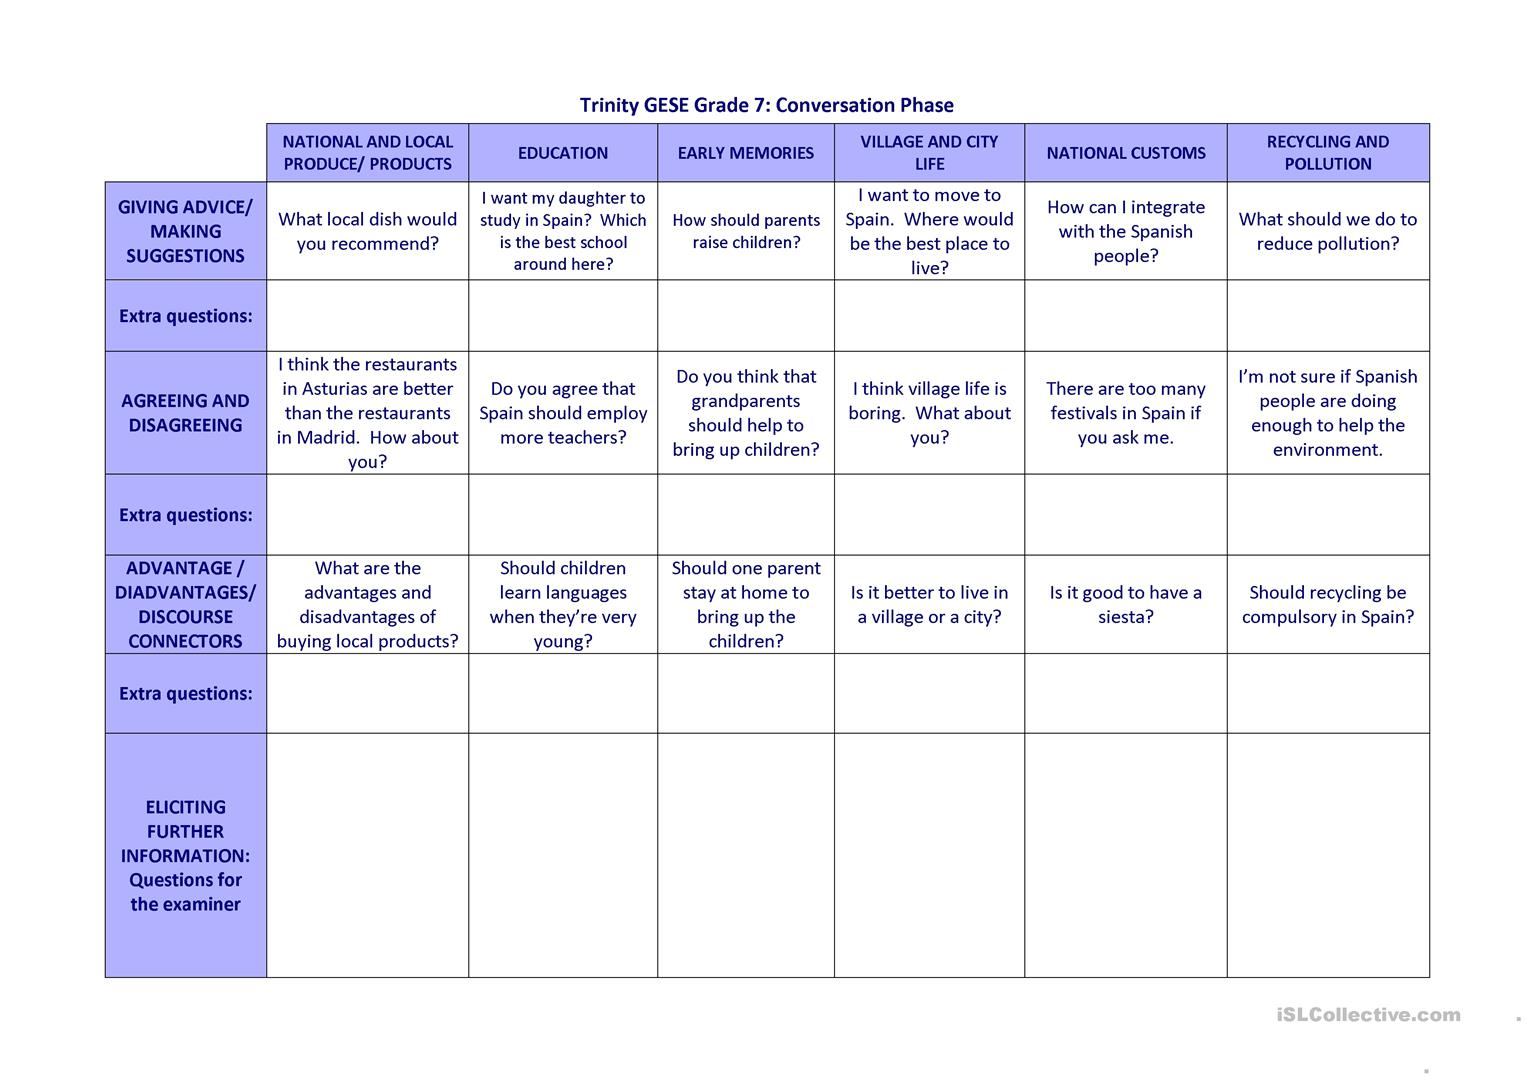 Trinity Gese Grade 7 Conversation Questions Worksheet